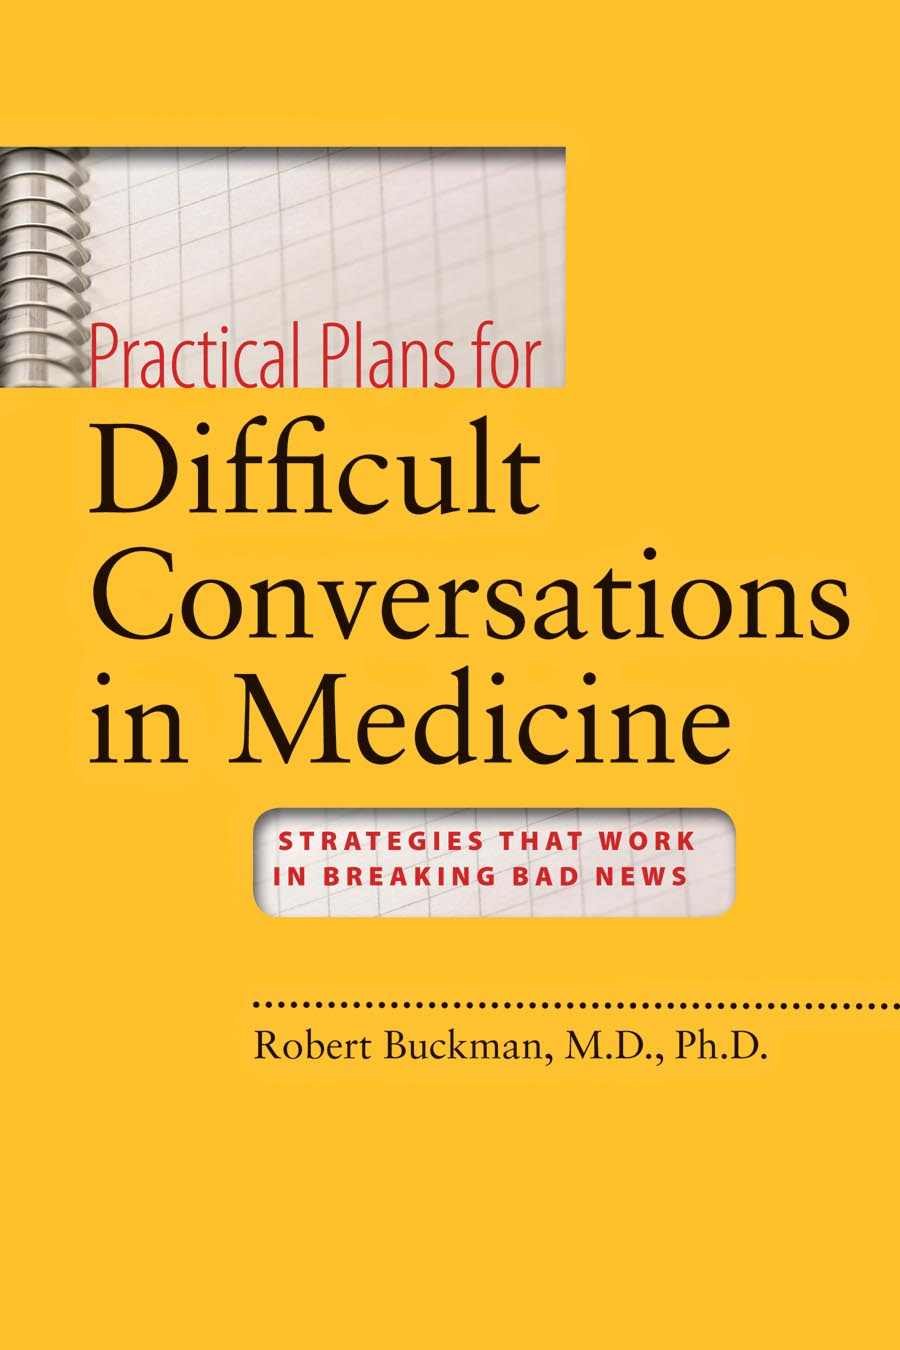 Practical Plans for Difficult Conversations in Medicine – Strategies That Work in Breaking Bad News diamond good news bad news cloth